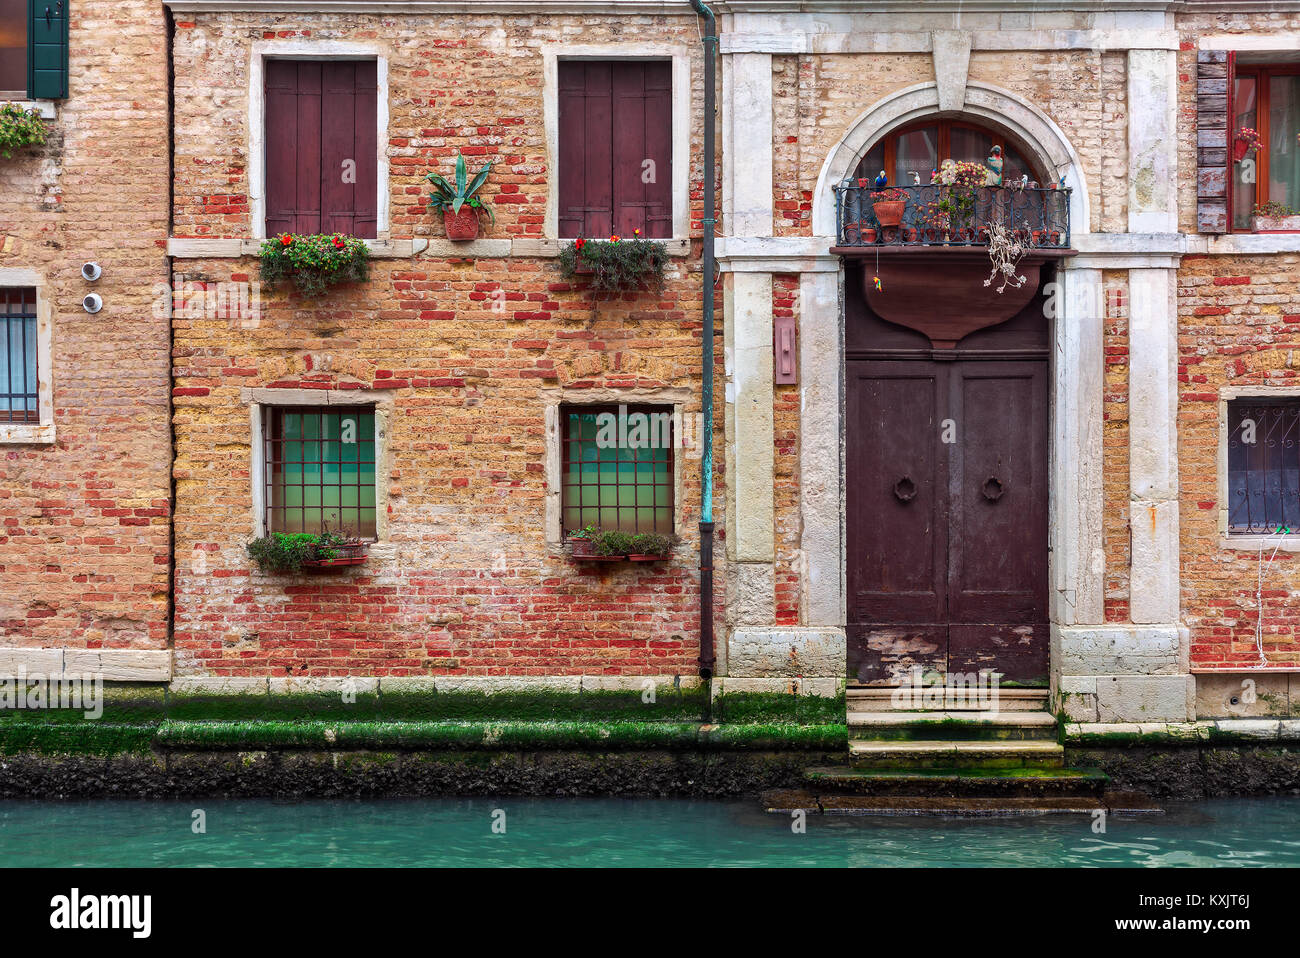 Facade of partially mossy old brick house with wooden vintage door on narrow canal in Venice, Italy. - Stock Image